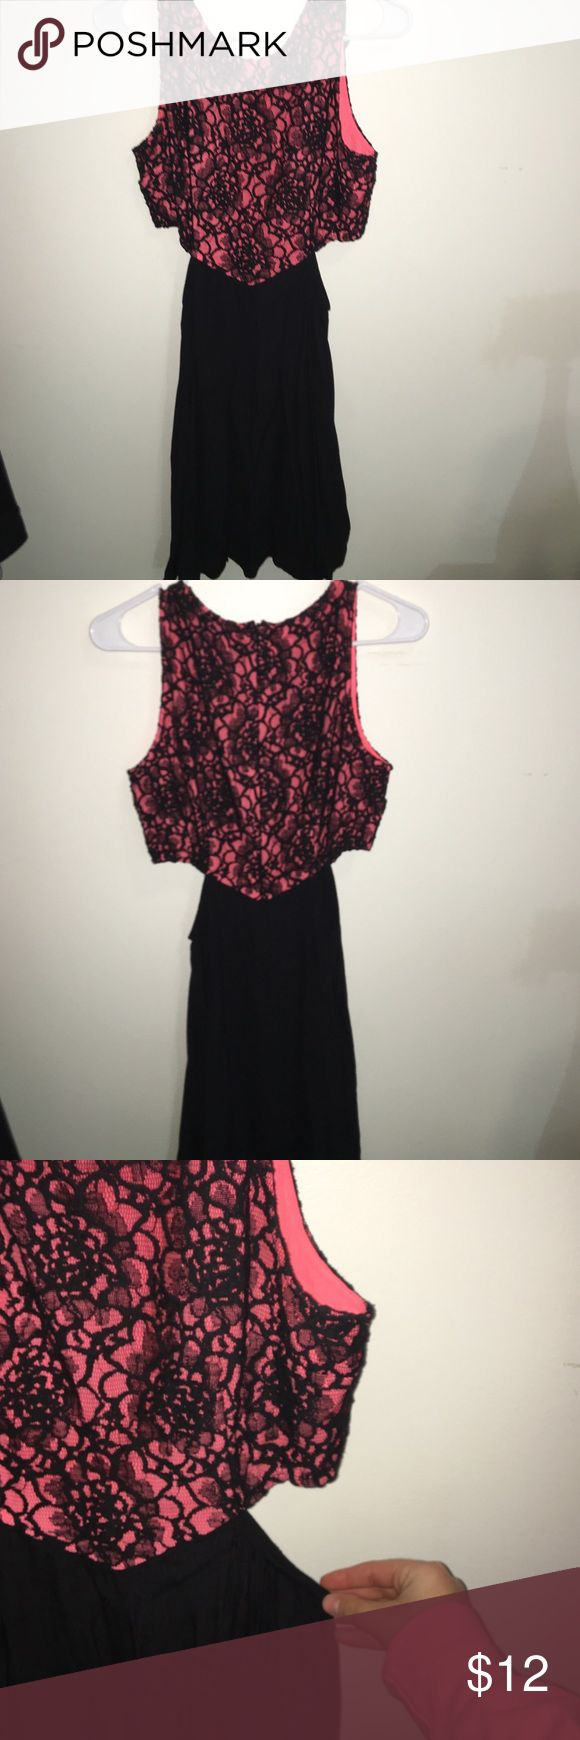 Forever21 Dress with cutouts Has a more fitted top section with coral and black lace, there are symmetrical cut outs that lay right below where a bra would sit! the rest of the dress is flowy and sits right above the knee! it's super comfy ! Forever 21 Dresses Midi